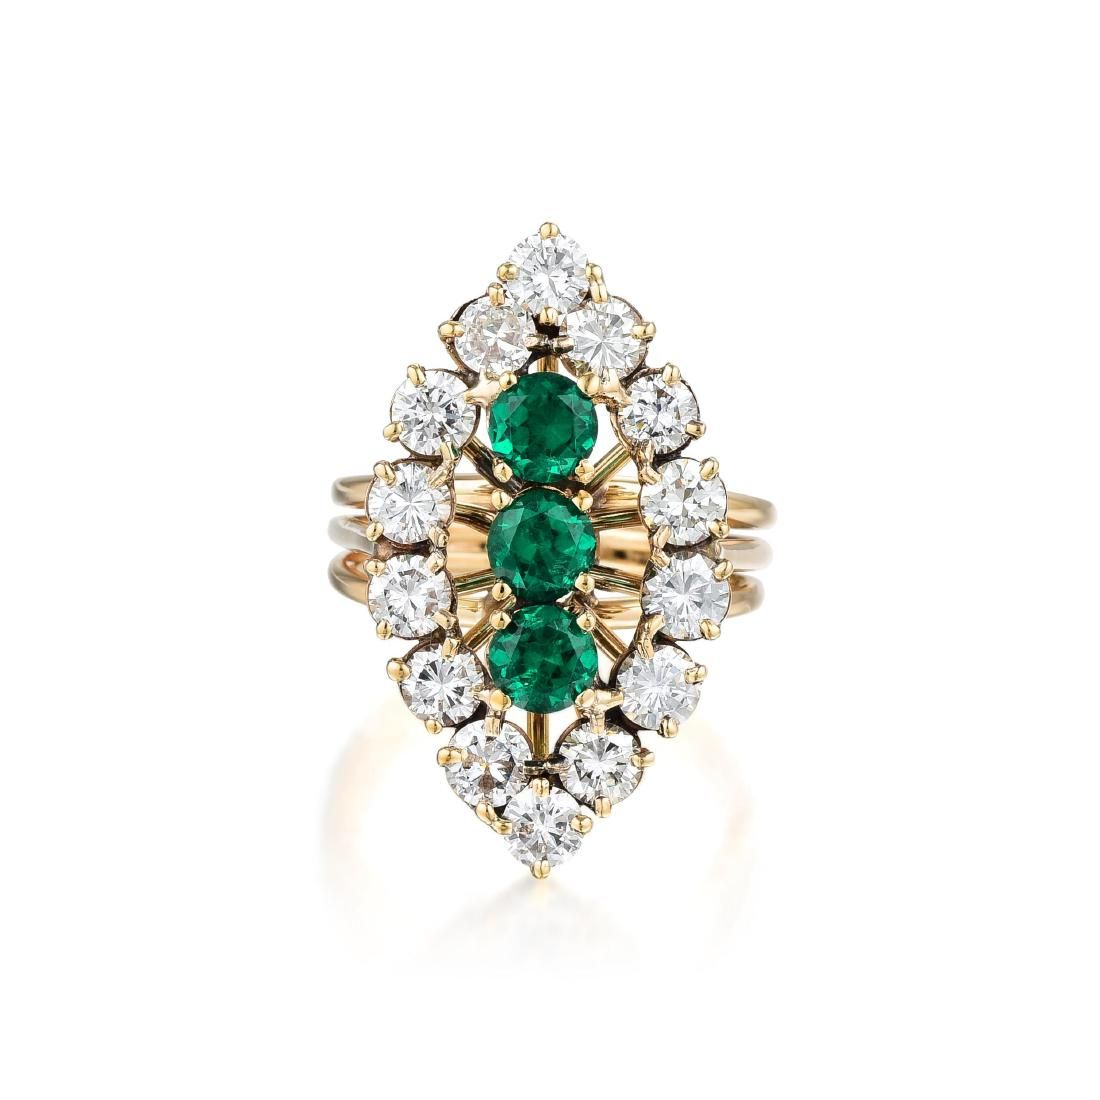 A 14K Gold Synthetic Emerald and Diamond Ring